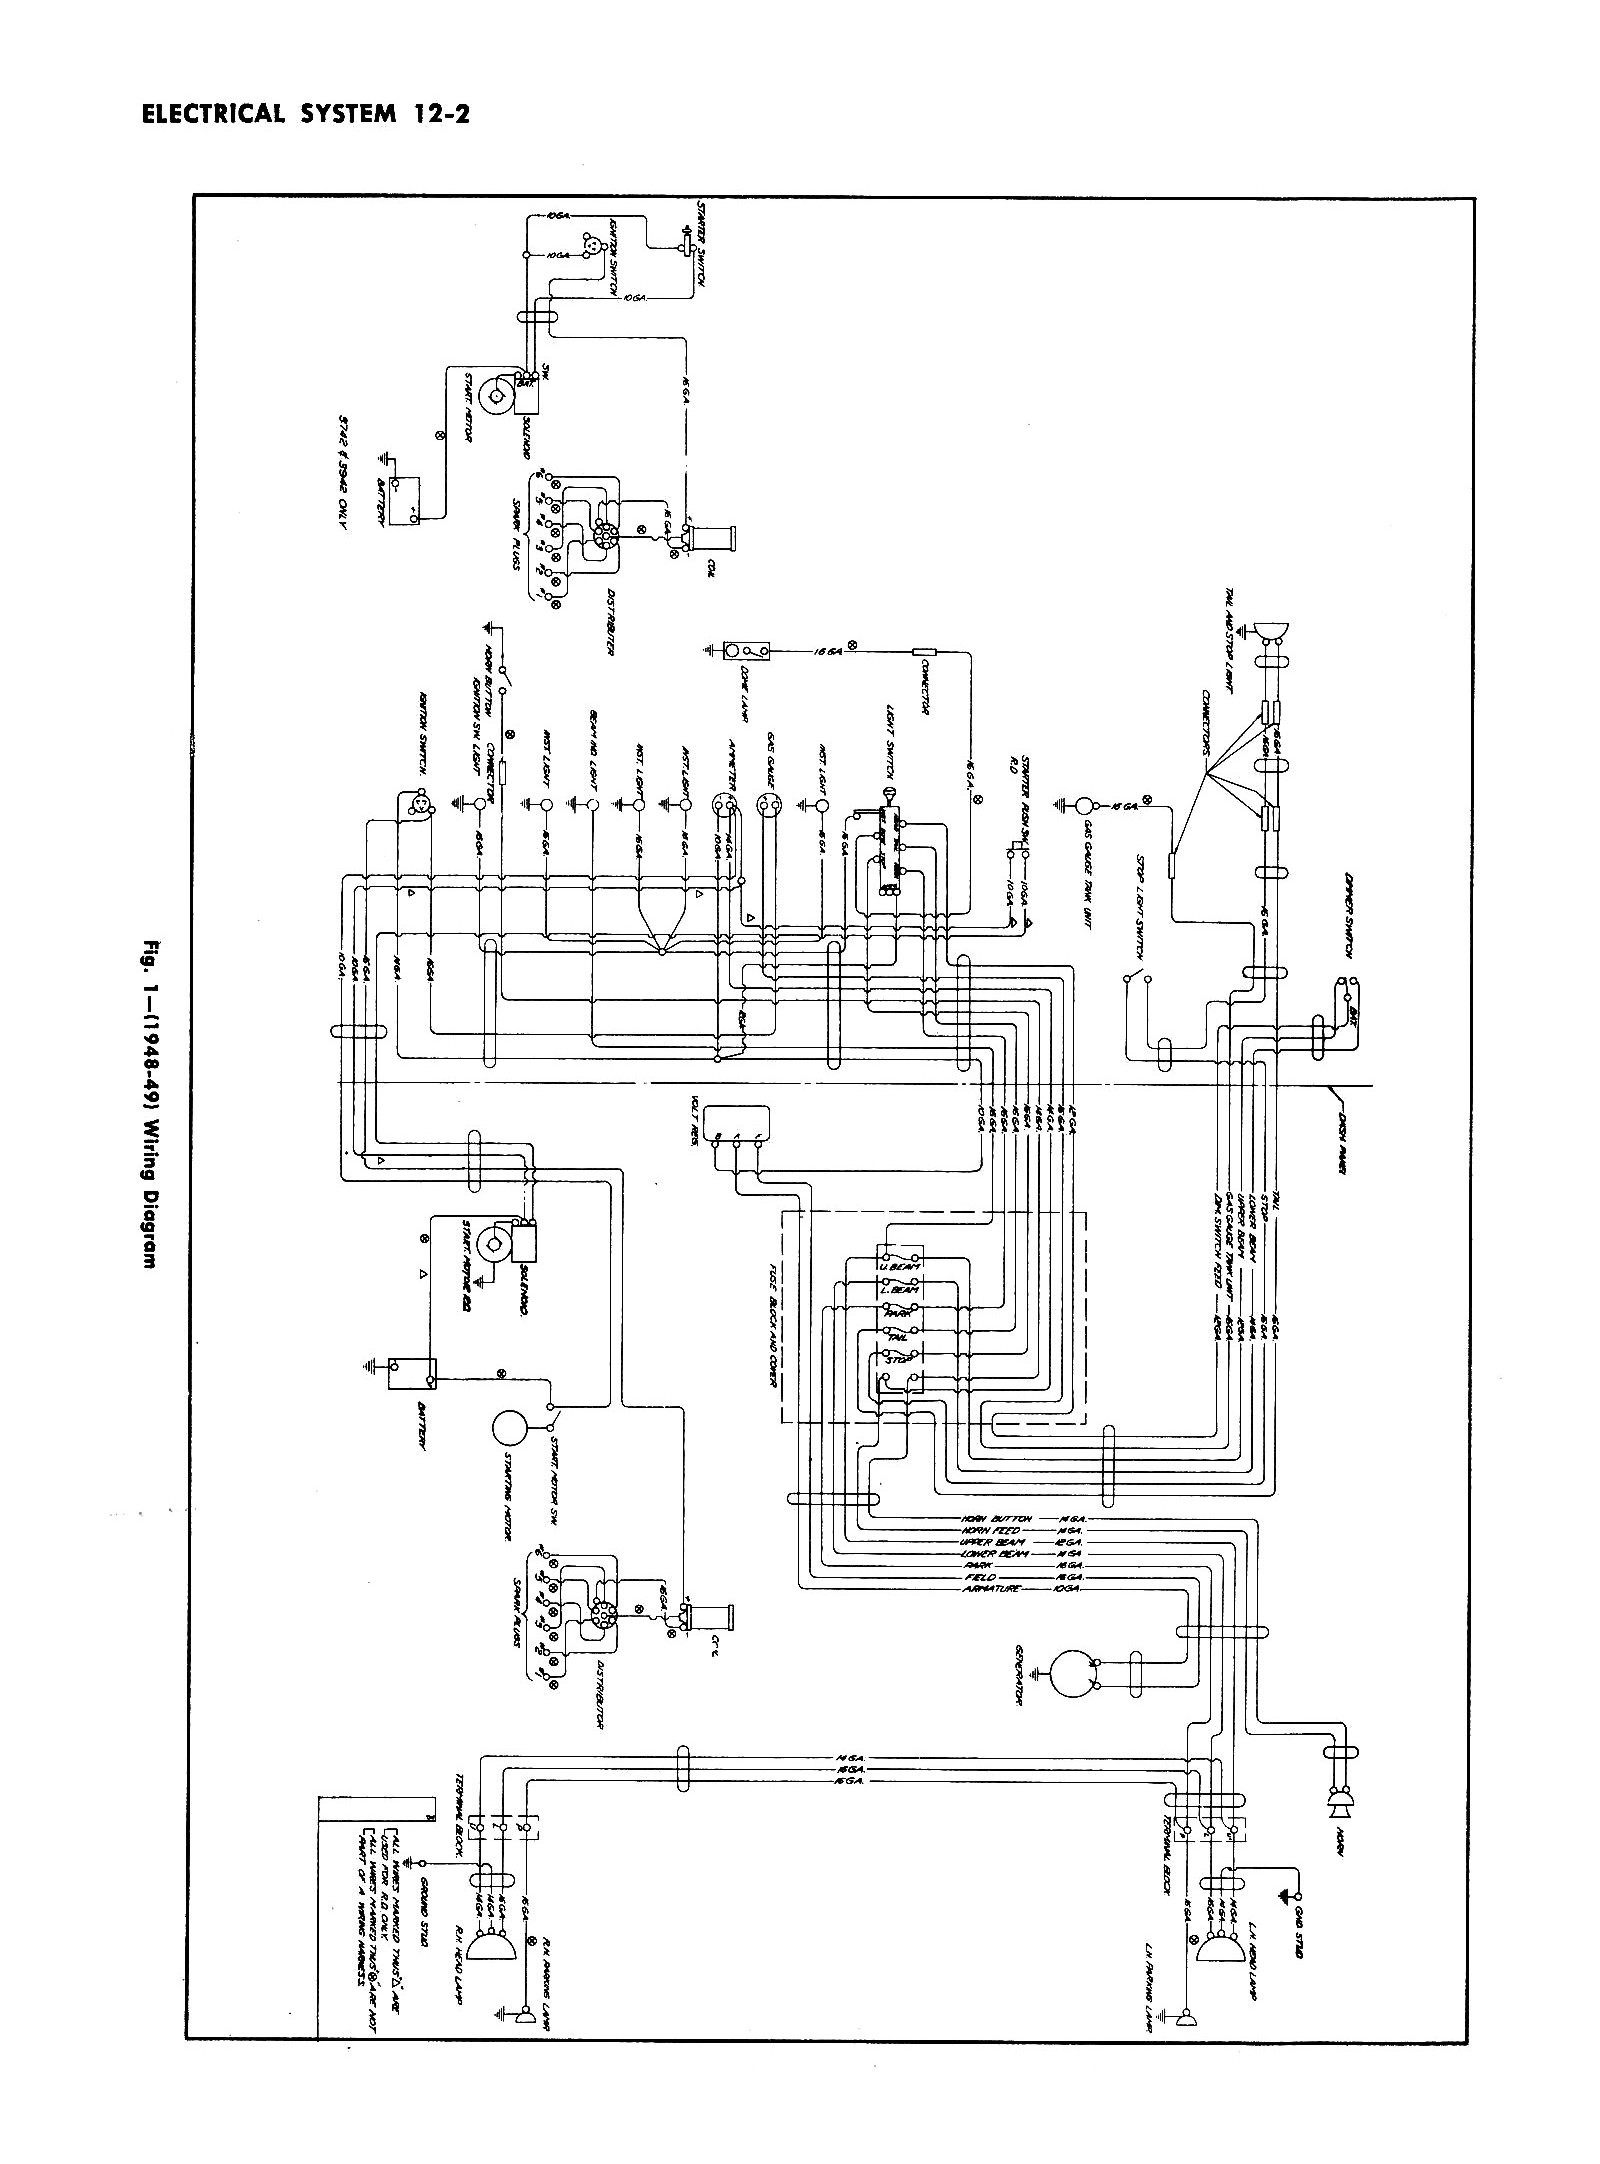 51 Chevy Truck Wiring Harness Diagram Libraries Deski Top Pc Computer Schematic 1951 Todays51 Diagrams 1950